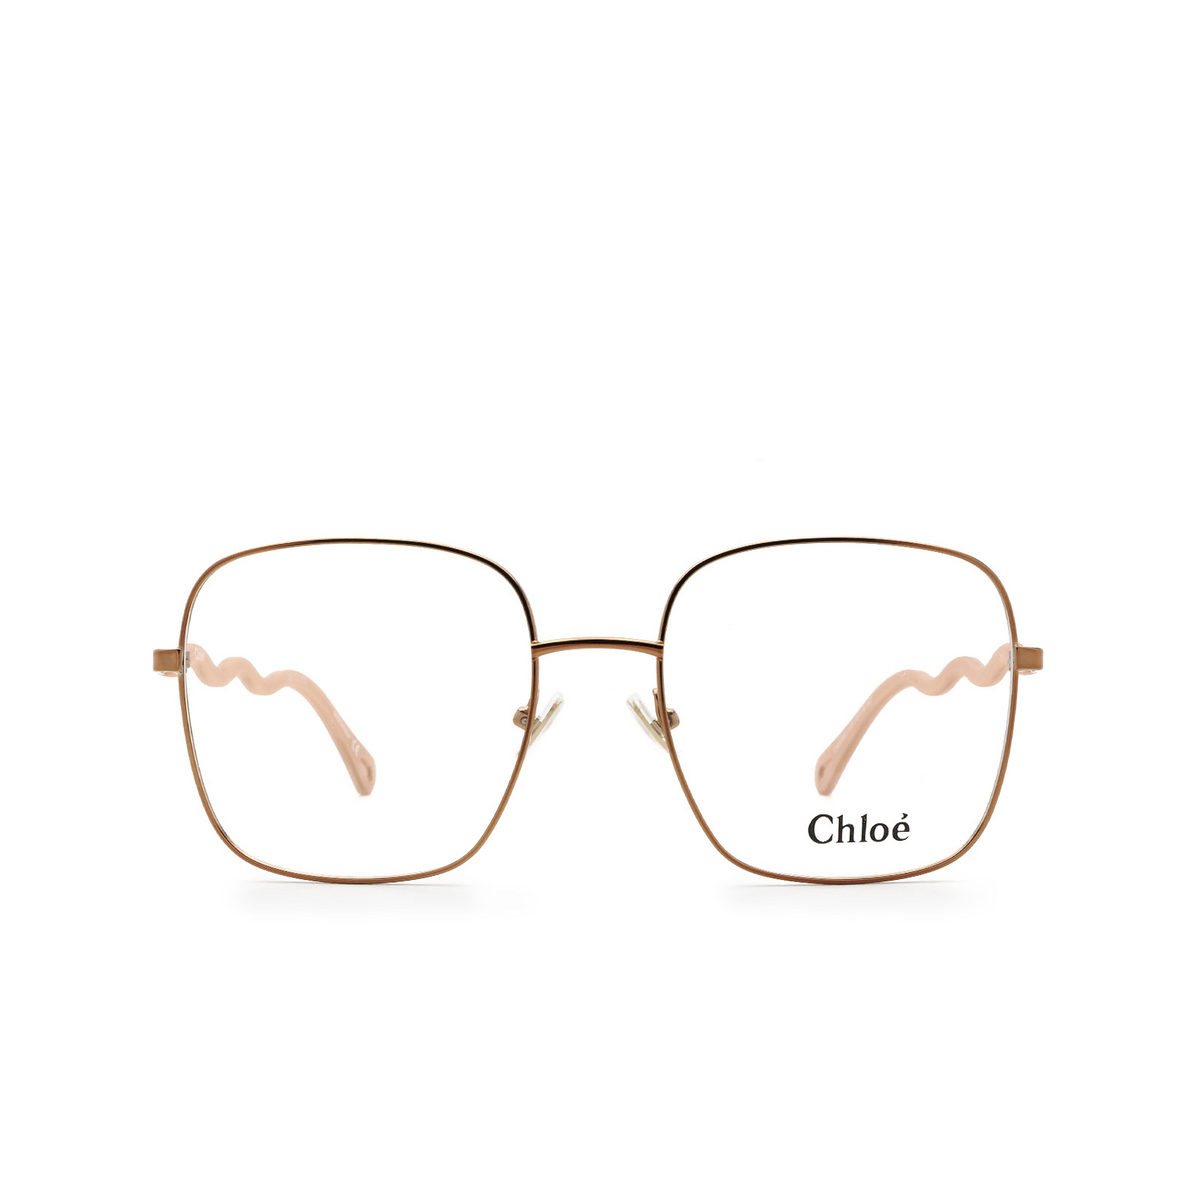 Chloé® Square Eyeglasses: CH0056O color Pink 001 - front view.